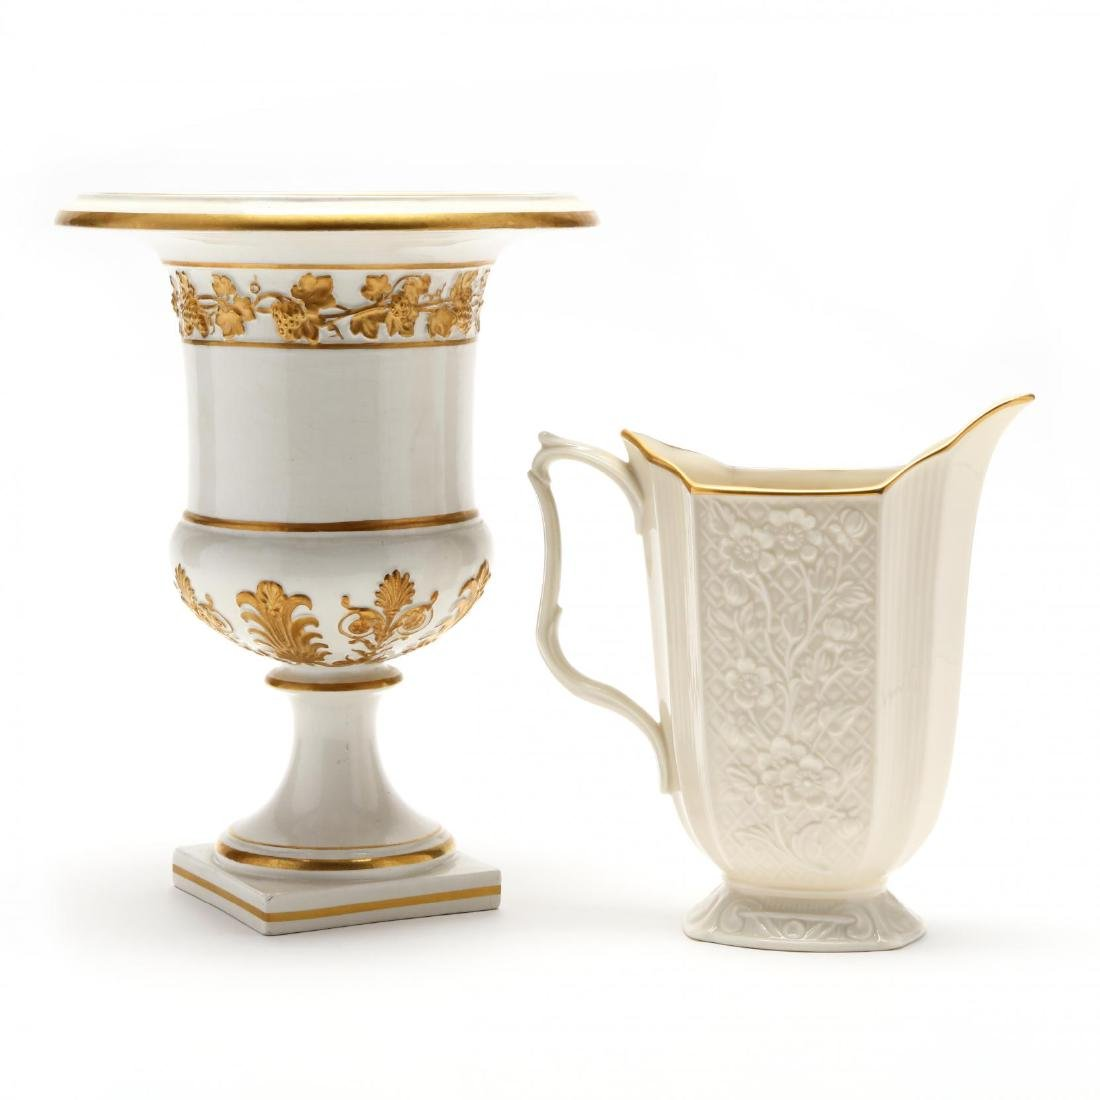 Group of Porcelain Serving Accessories - 5